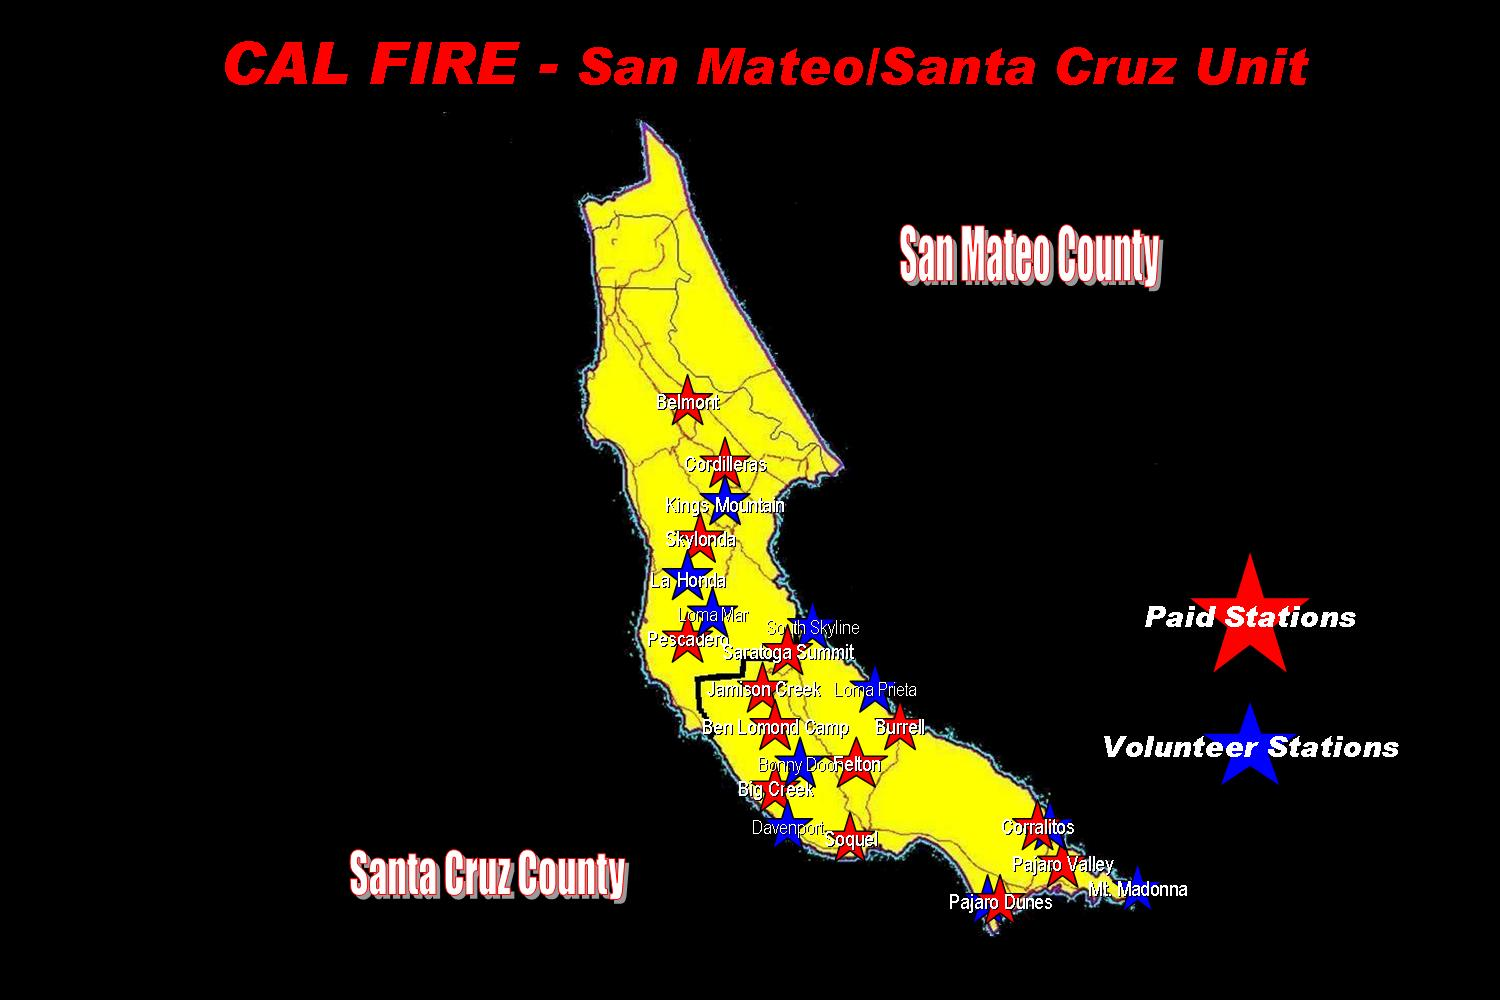 Santa Cruz County Fire